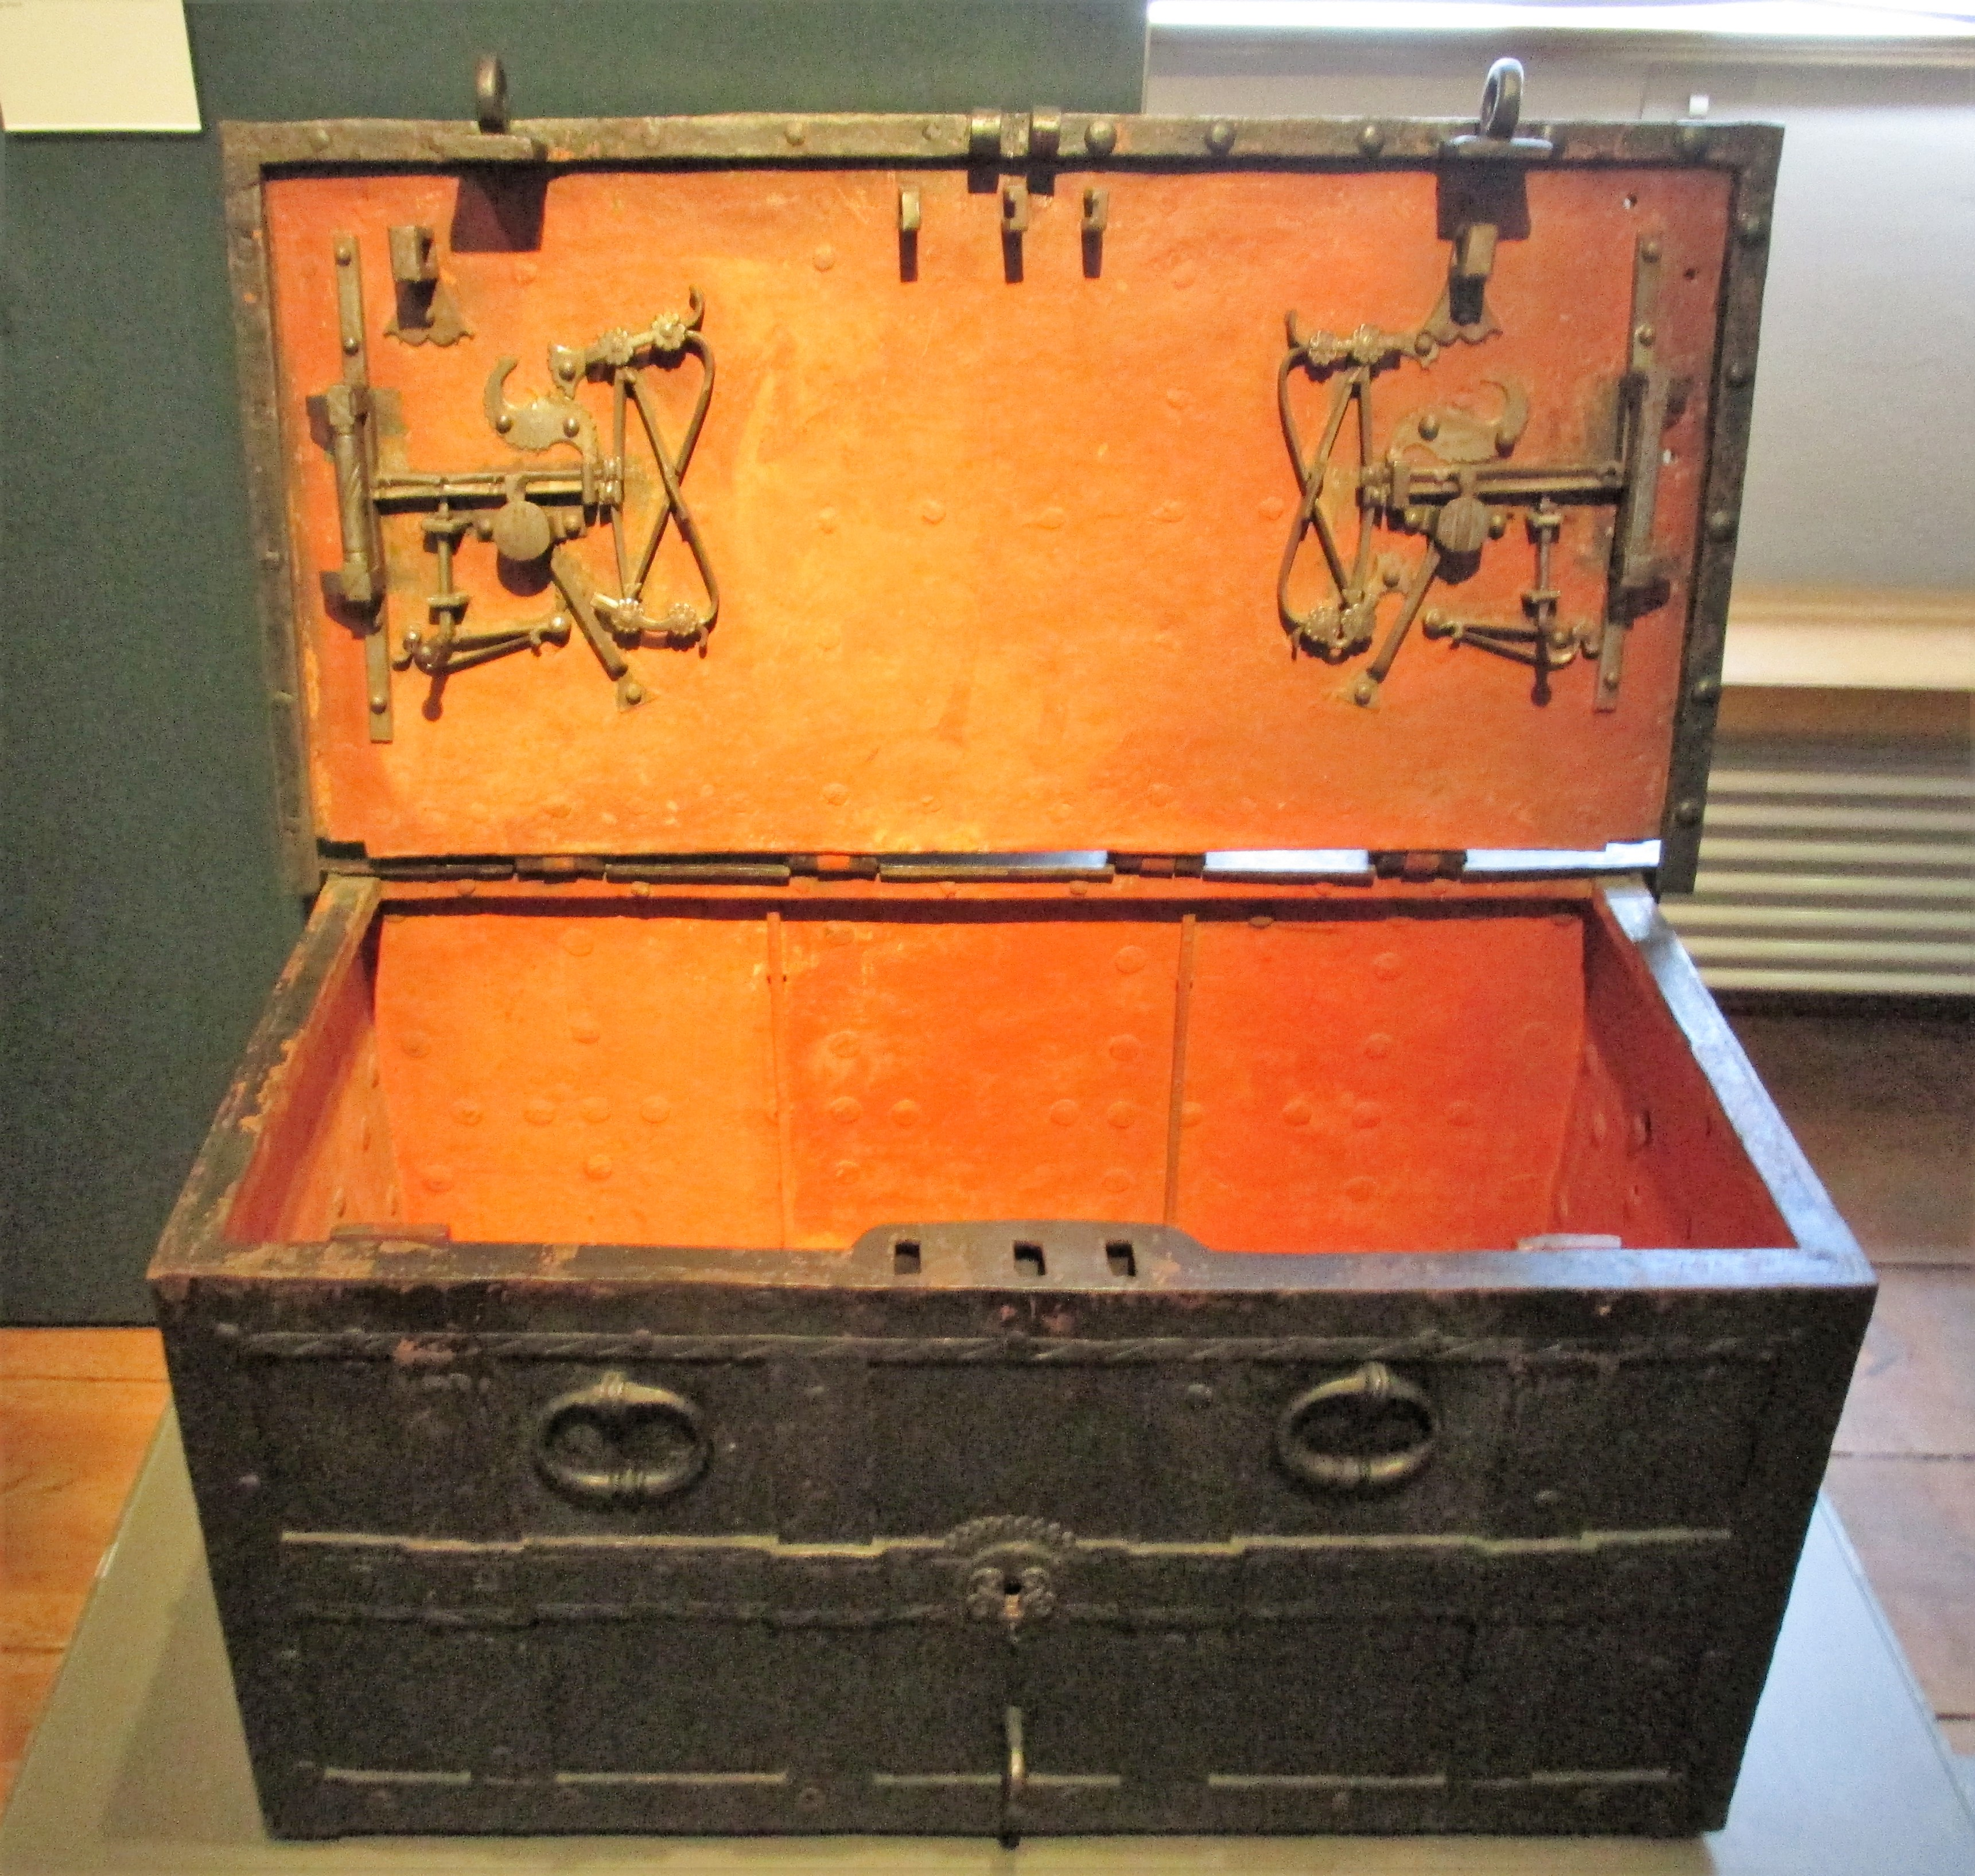 Chest, with intricate locks, where the funds collected by Luther's church were kept.